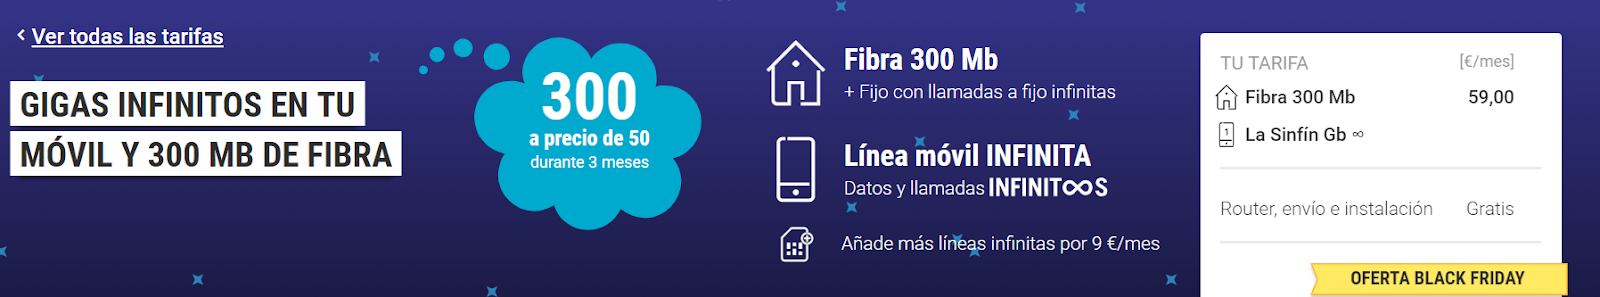 Fibra Yoigo Black Friday 2018